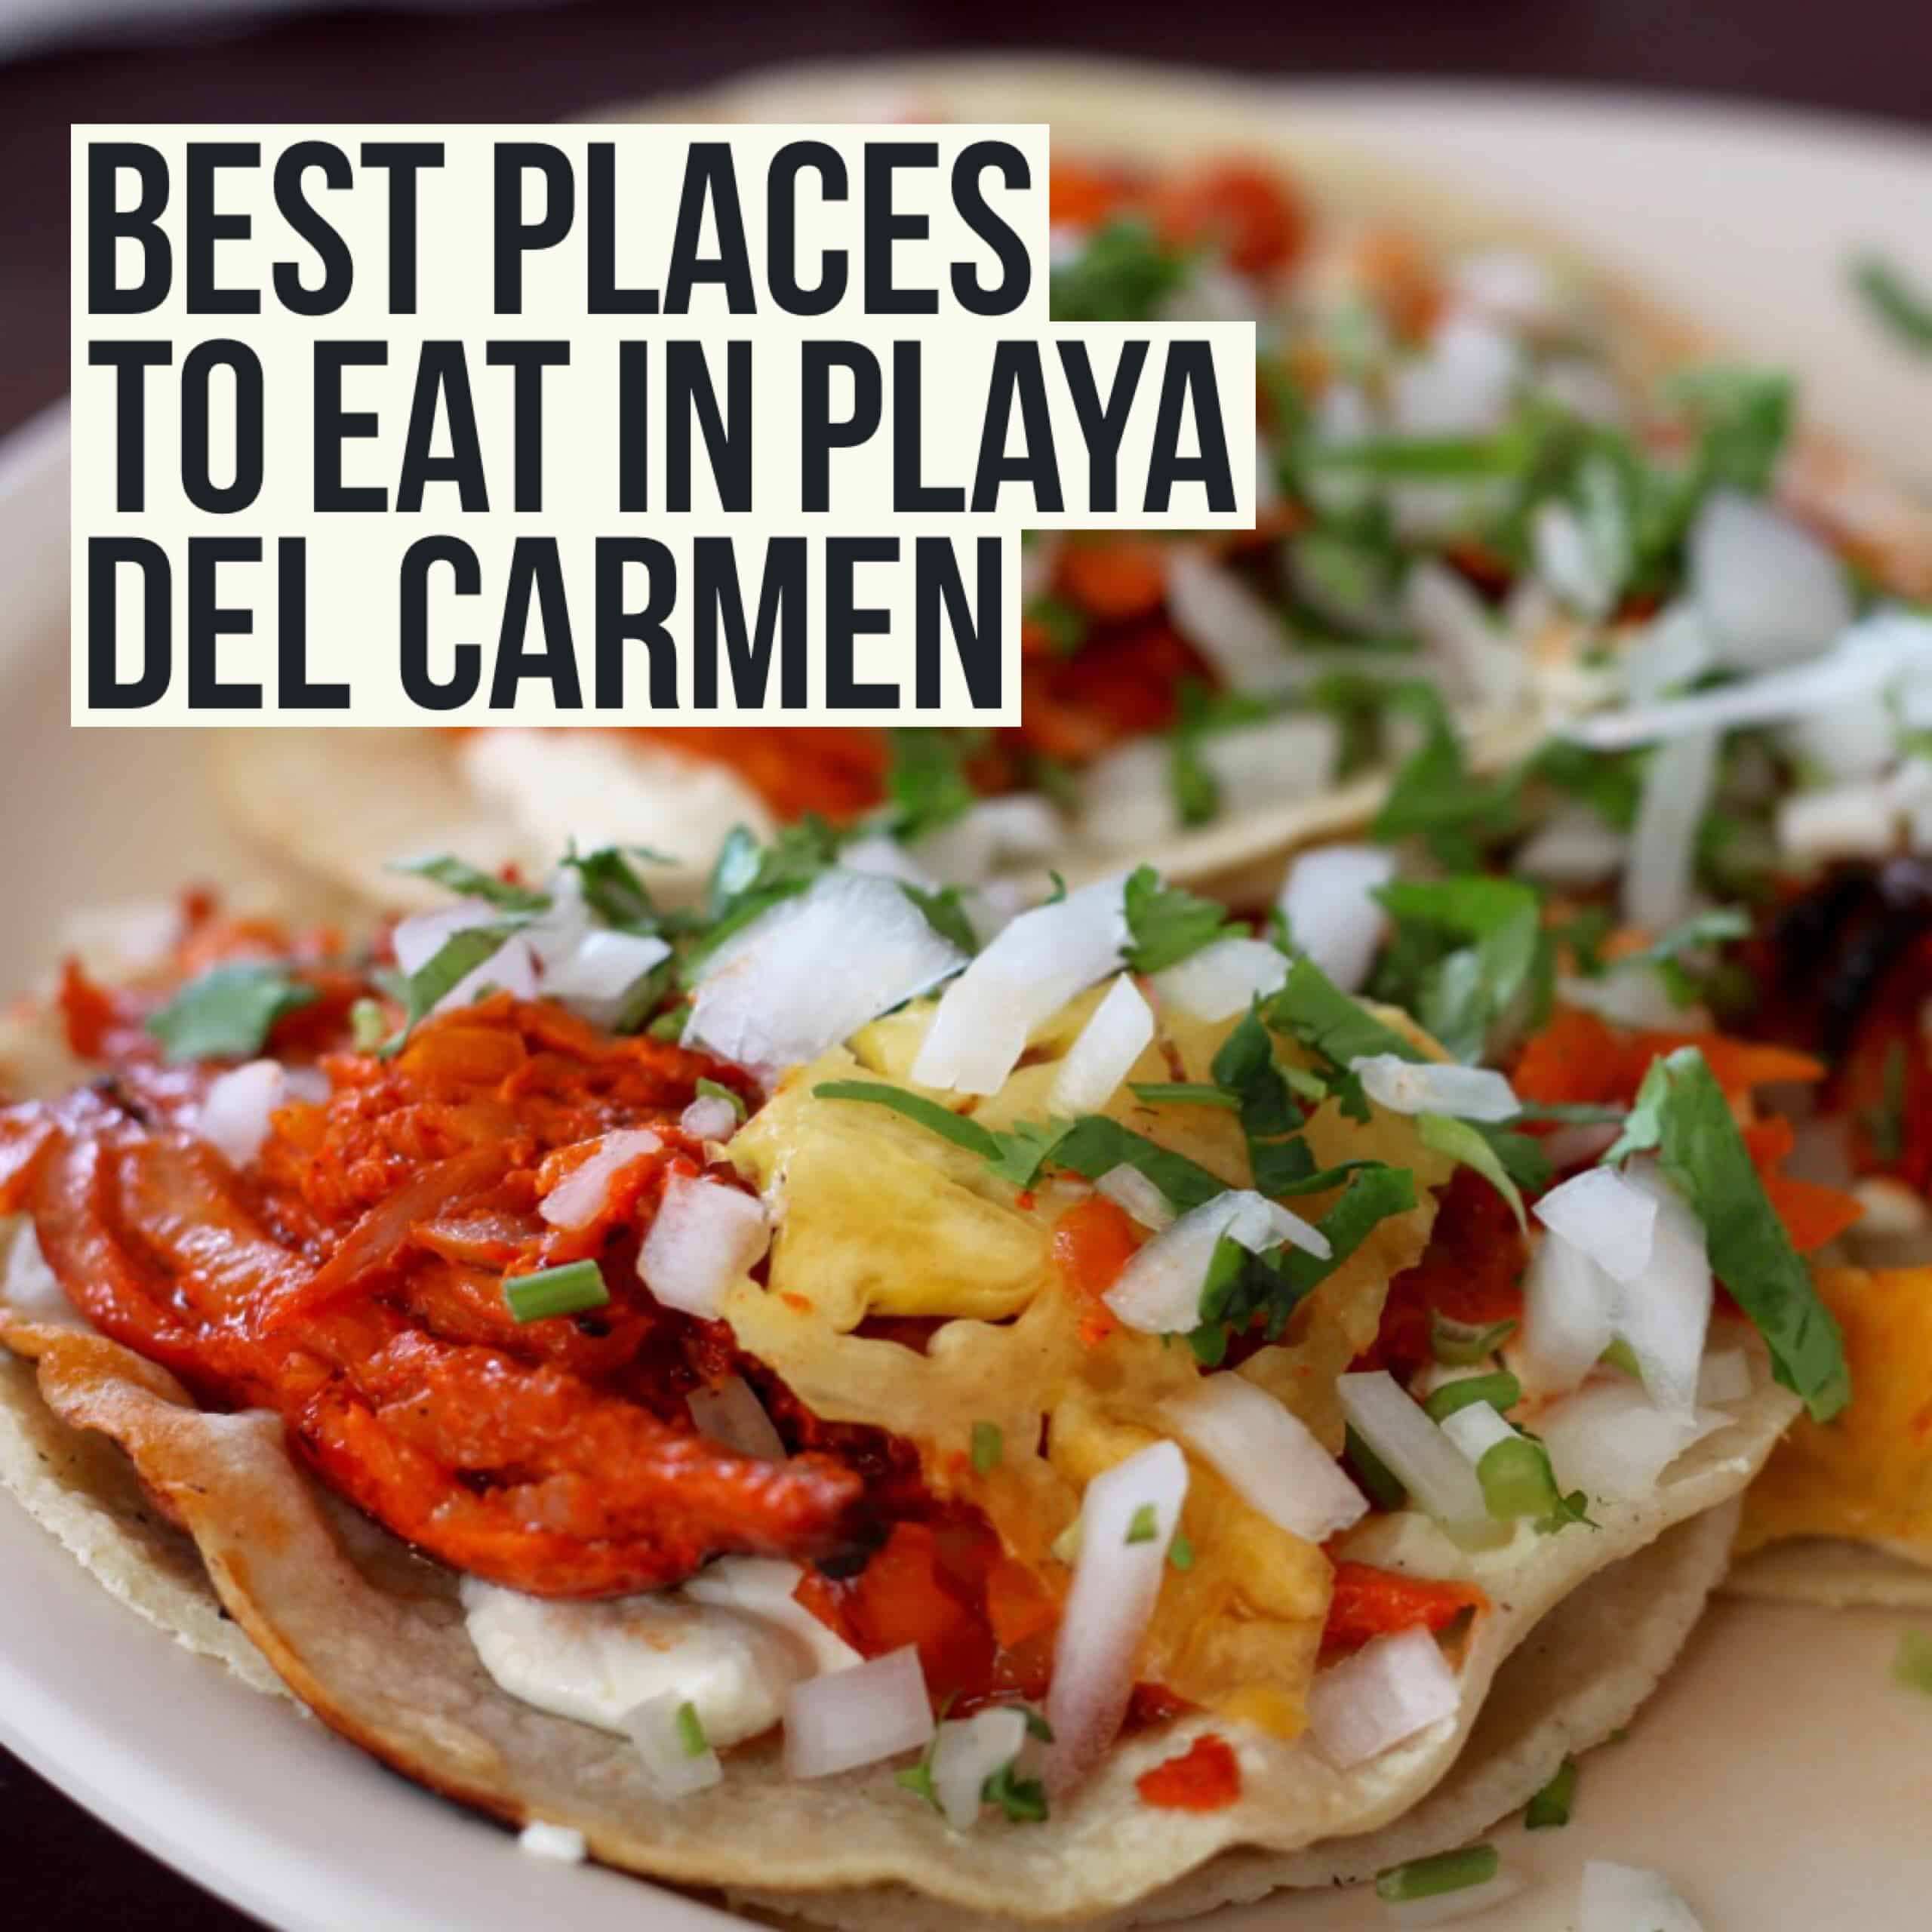 Best places to eat in playa del carmen female foodie for Best places to eat in jackson wy